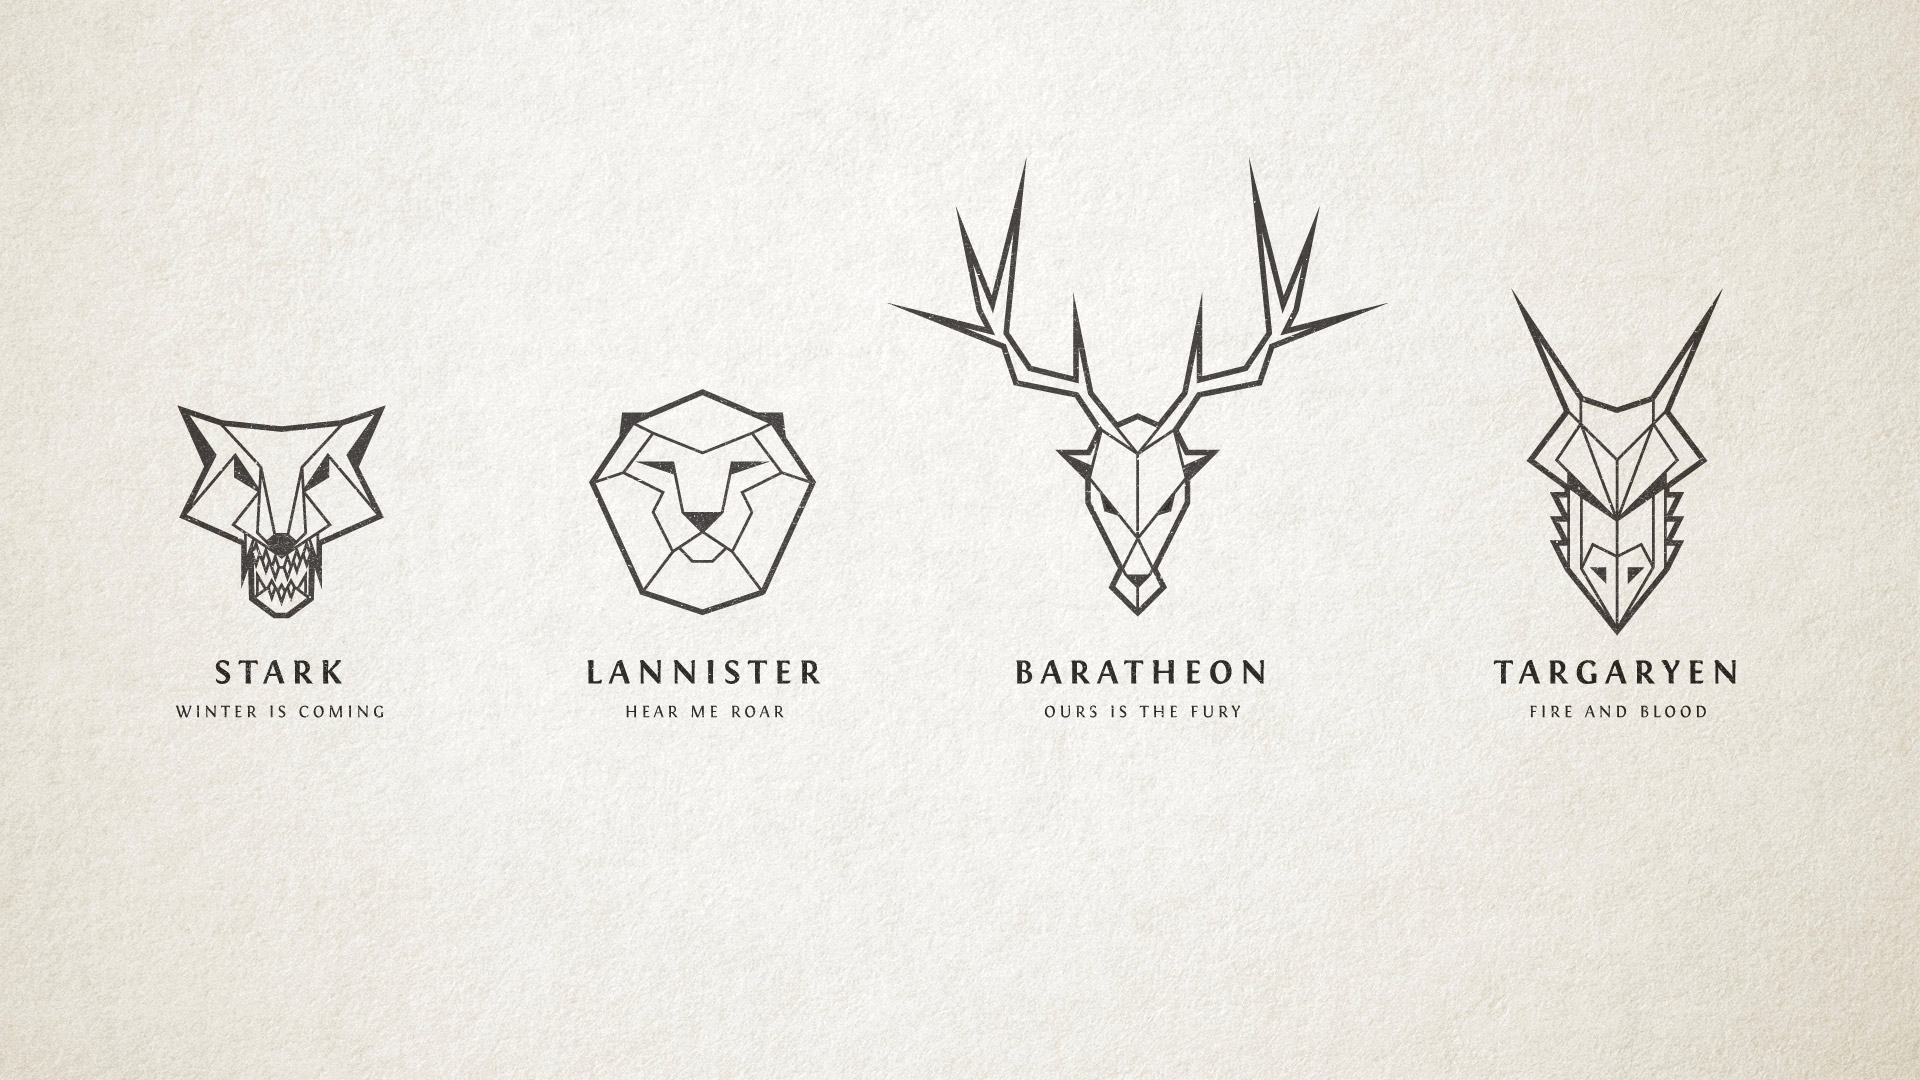 Game of thrones 1366x768 clipart.